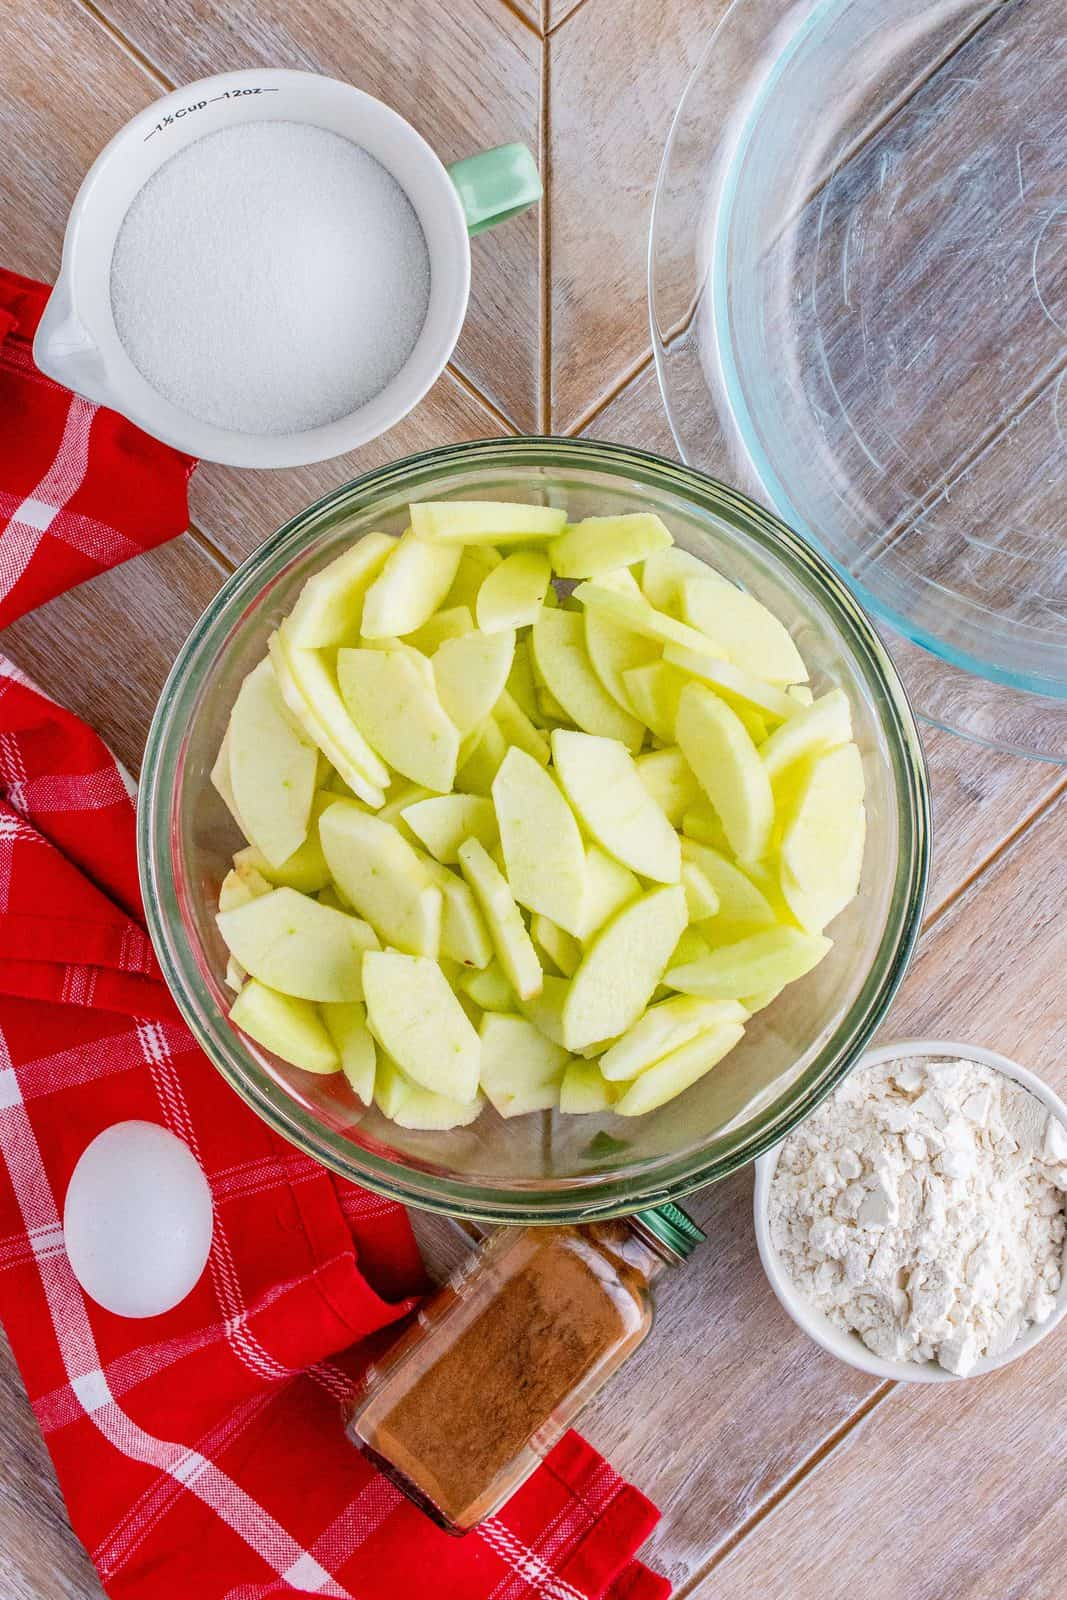 Sliced apples added to clear bowl.